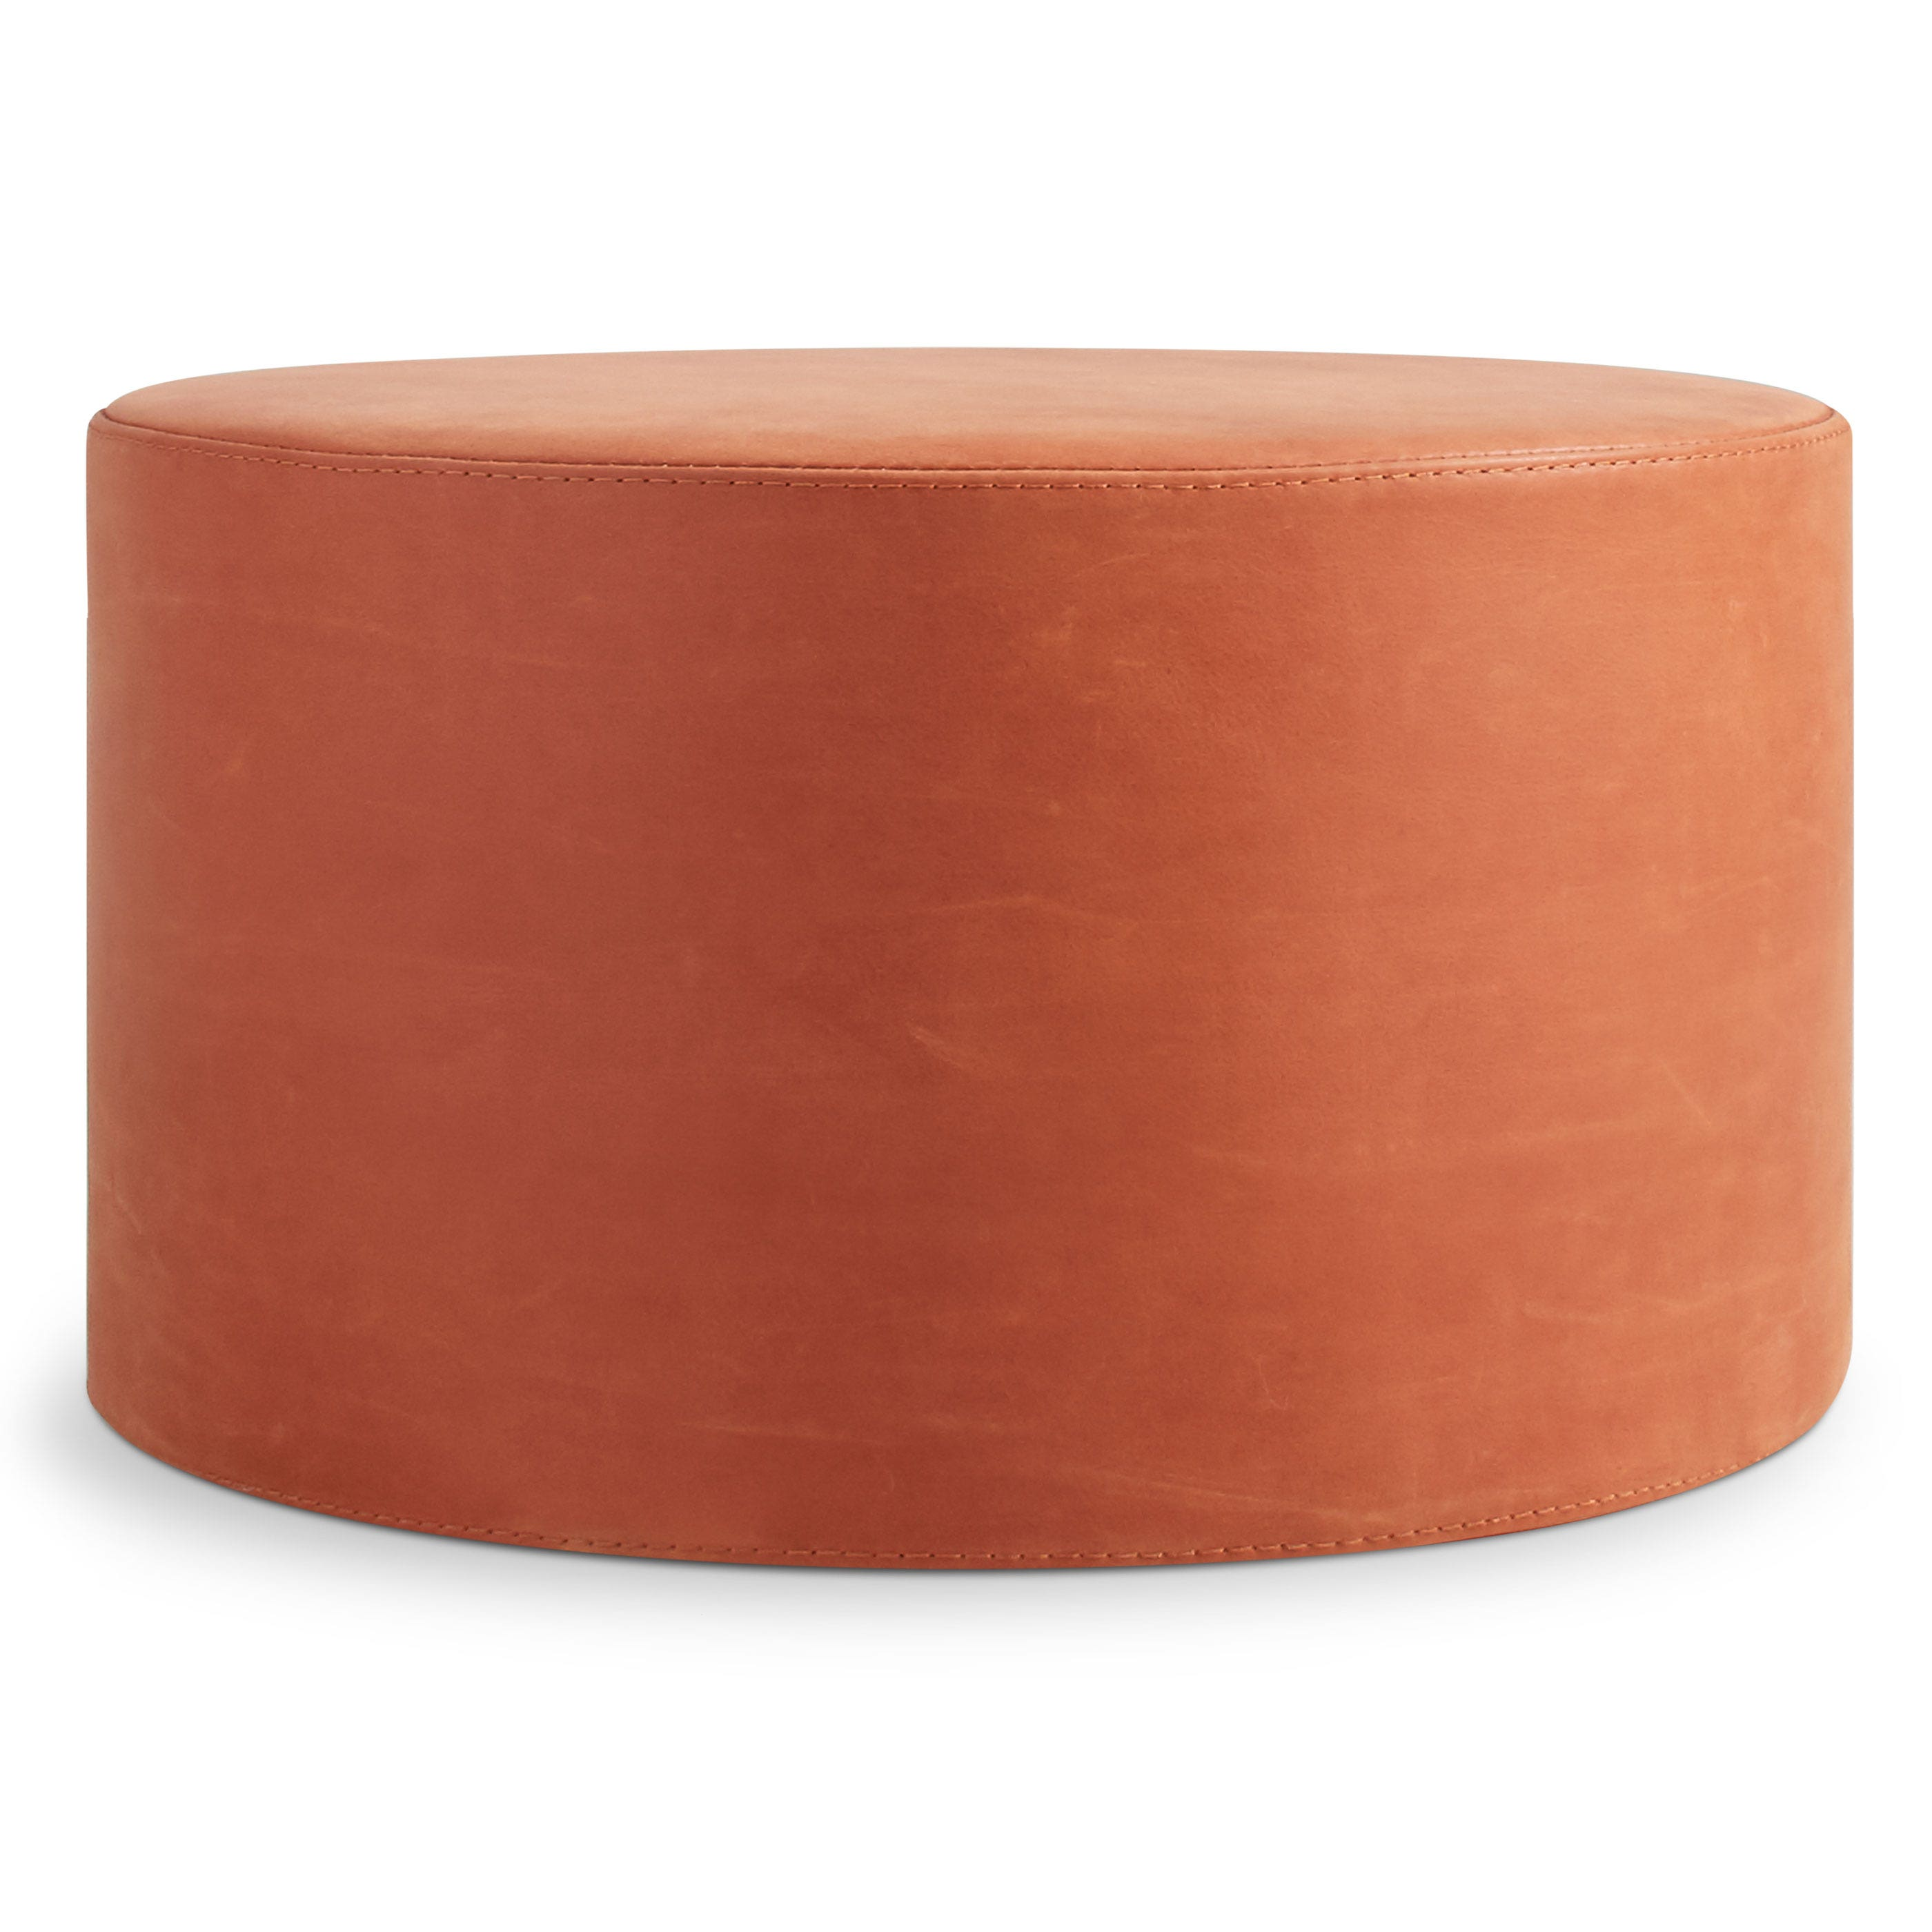 Rolling Ottoman Coffee Table.Bumper Large Leather Ottoman